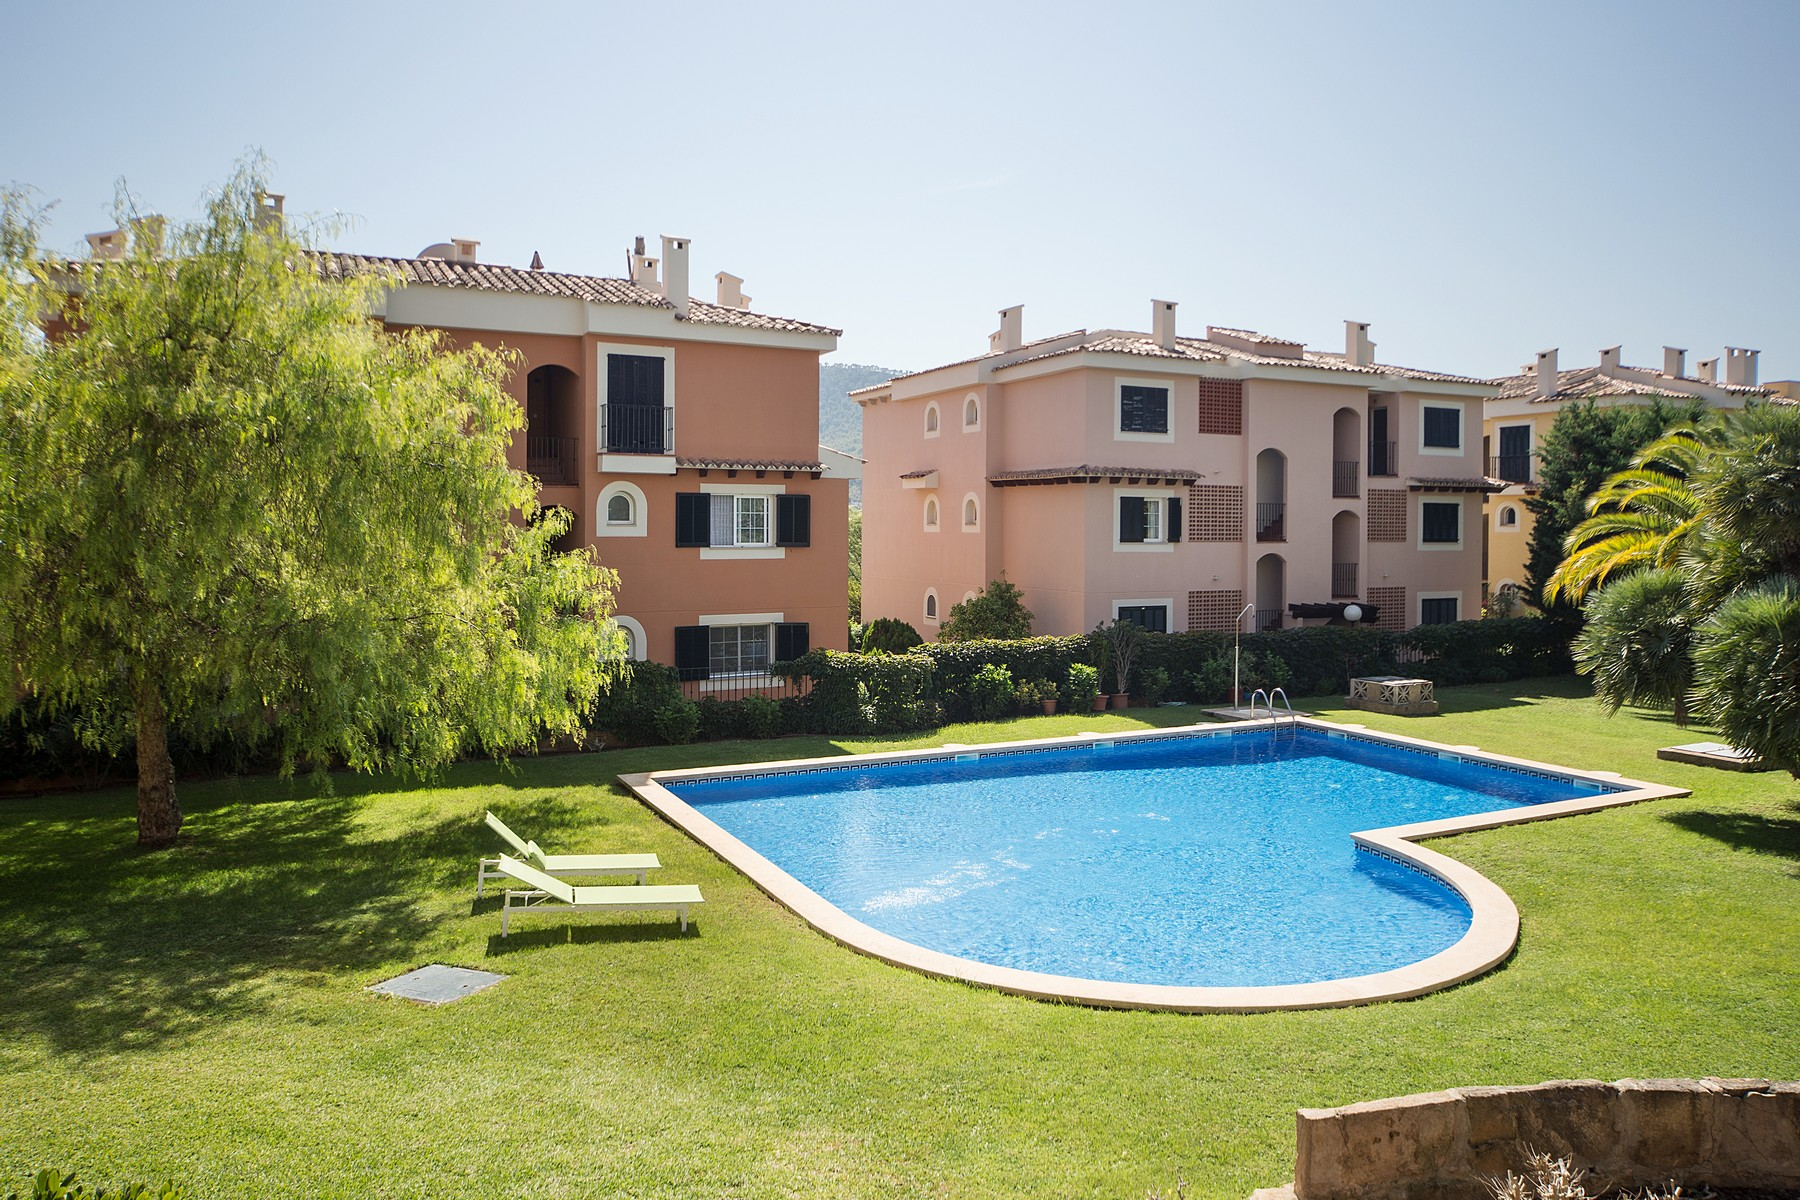 Appartement pour l Vente à Apartments in beautiful community in Port Andratx Port Andratx, Majorque, 07157 Espagne